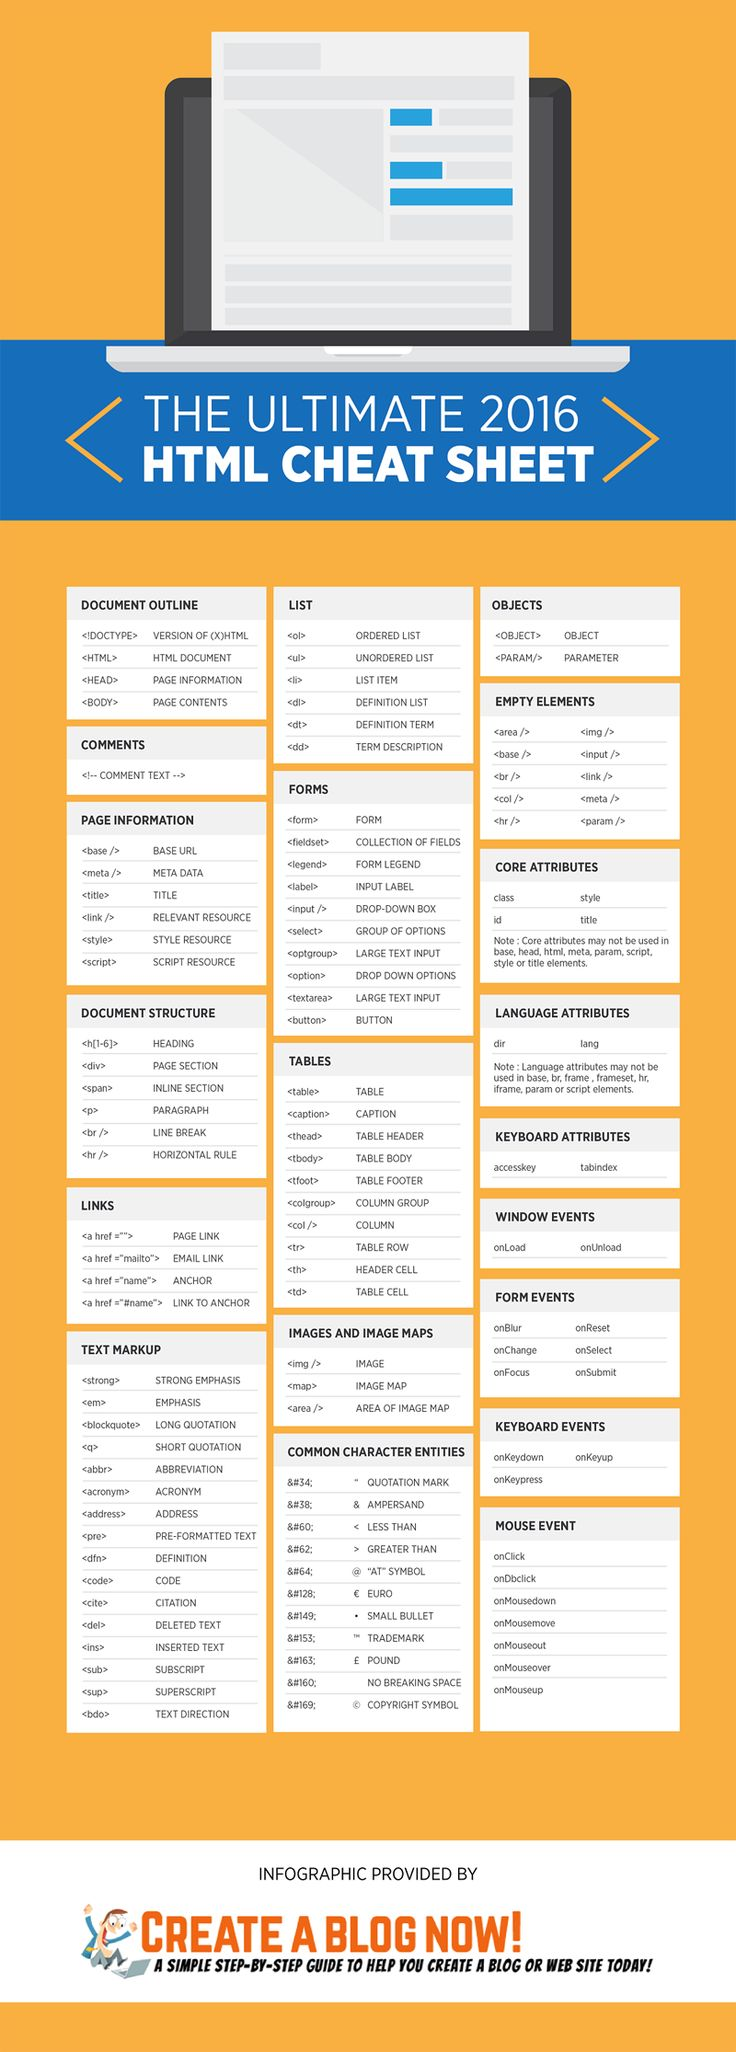 The Ultimate 2016 HTML Cheat Sheet - Infographics - Website Magazine